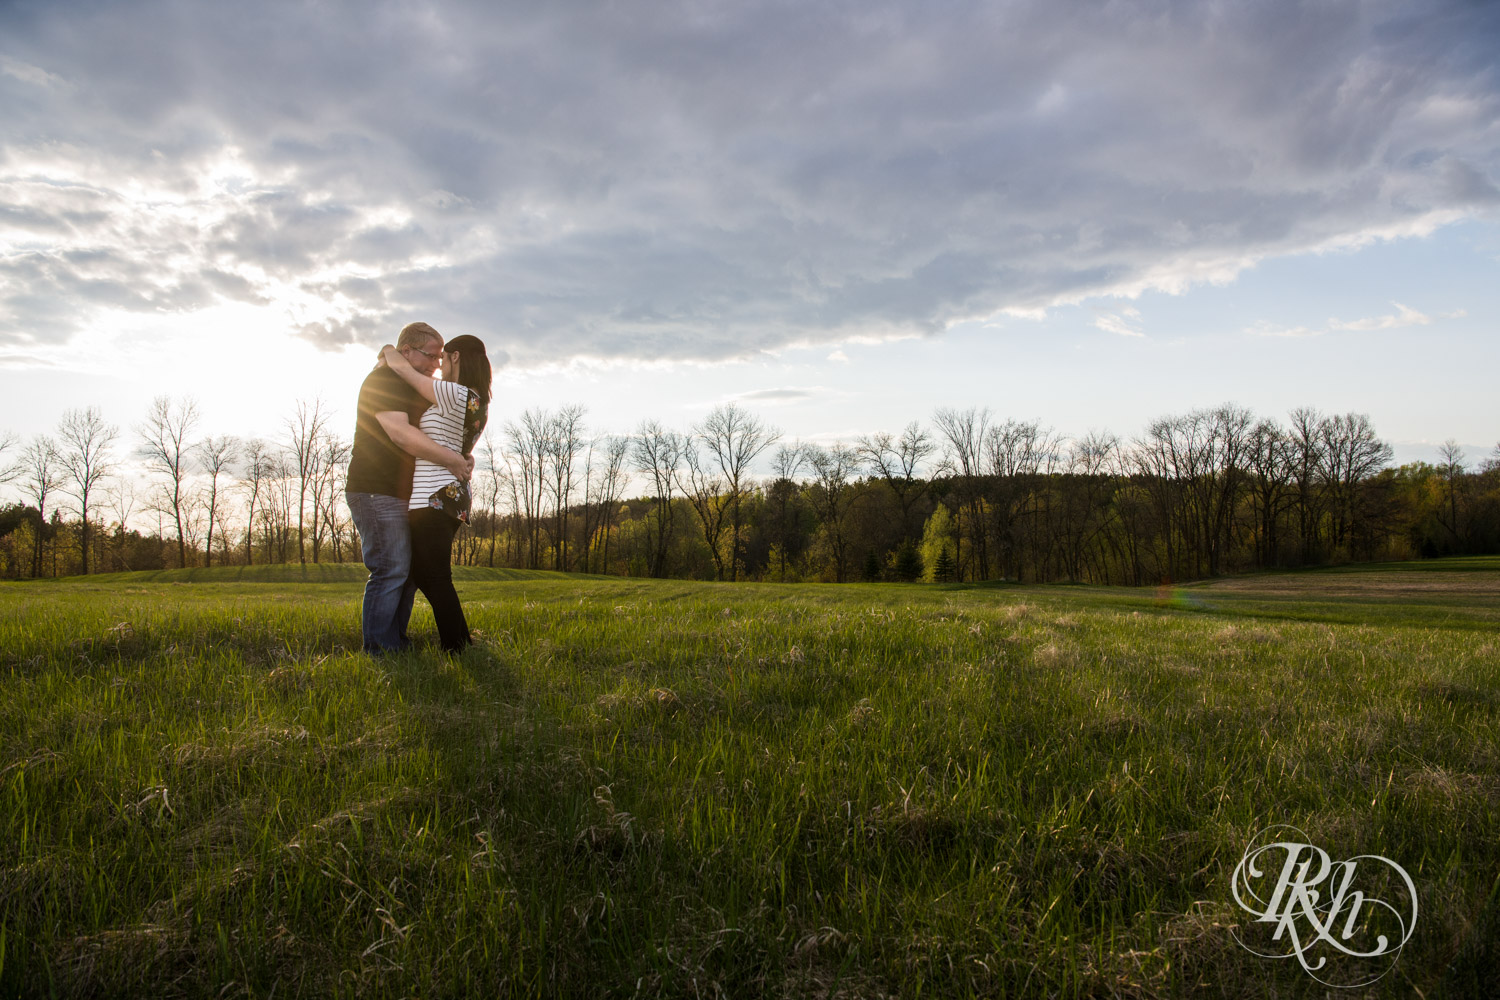 Chelsey & Erik - Minnesota Engagement Photography - Creekside Farm and Events - Rush City - RKH Images  (17 of 18).jpg